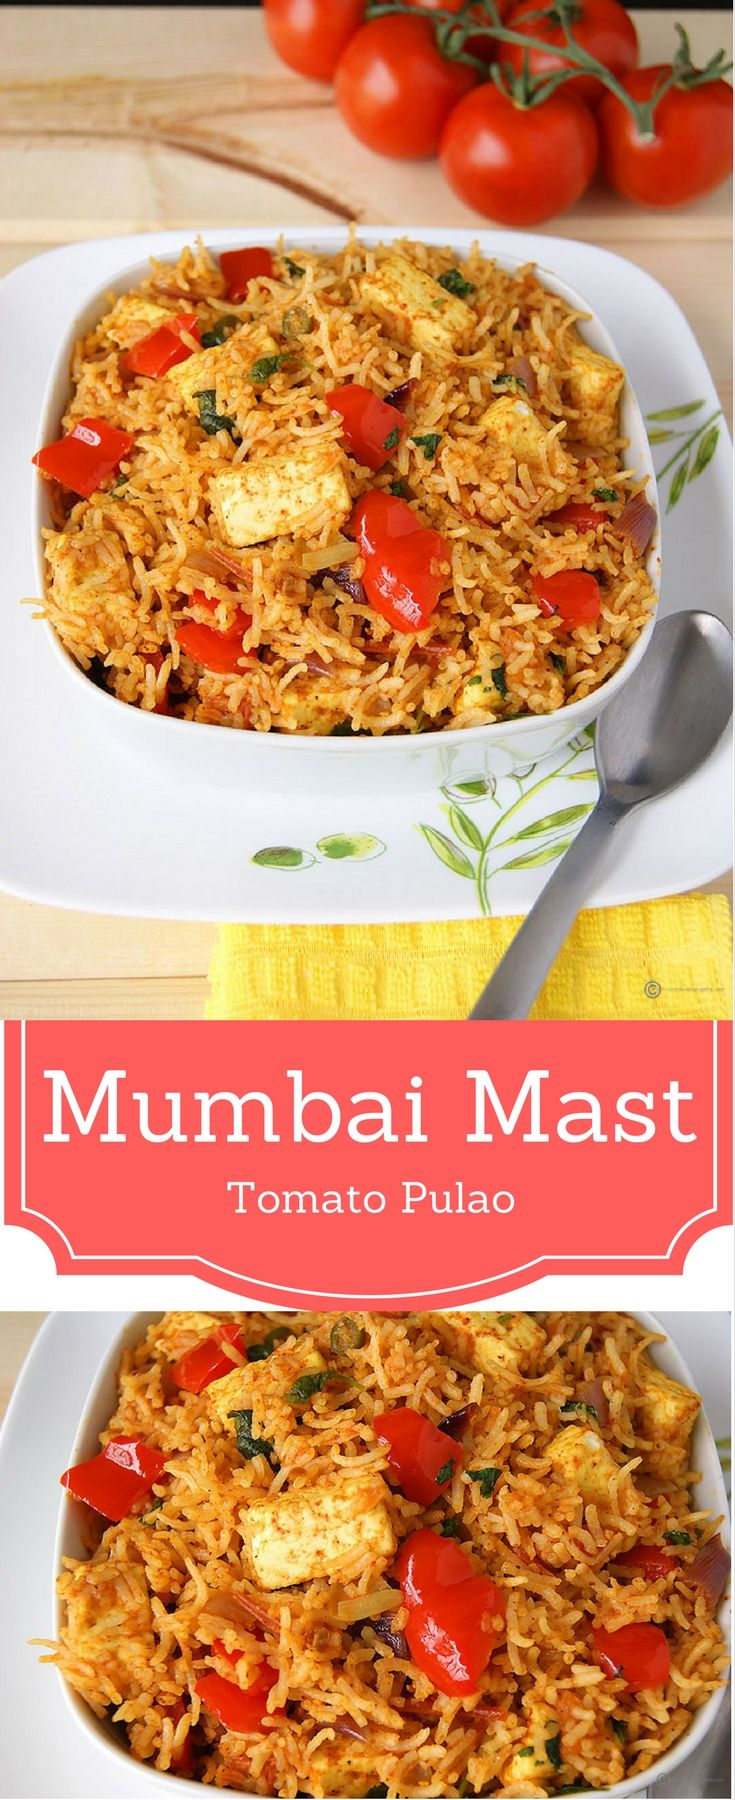 Mumbai Mast Tomato Pulao is a Mumbai street food style rice loaded with paneer and bell peppers.